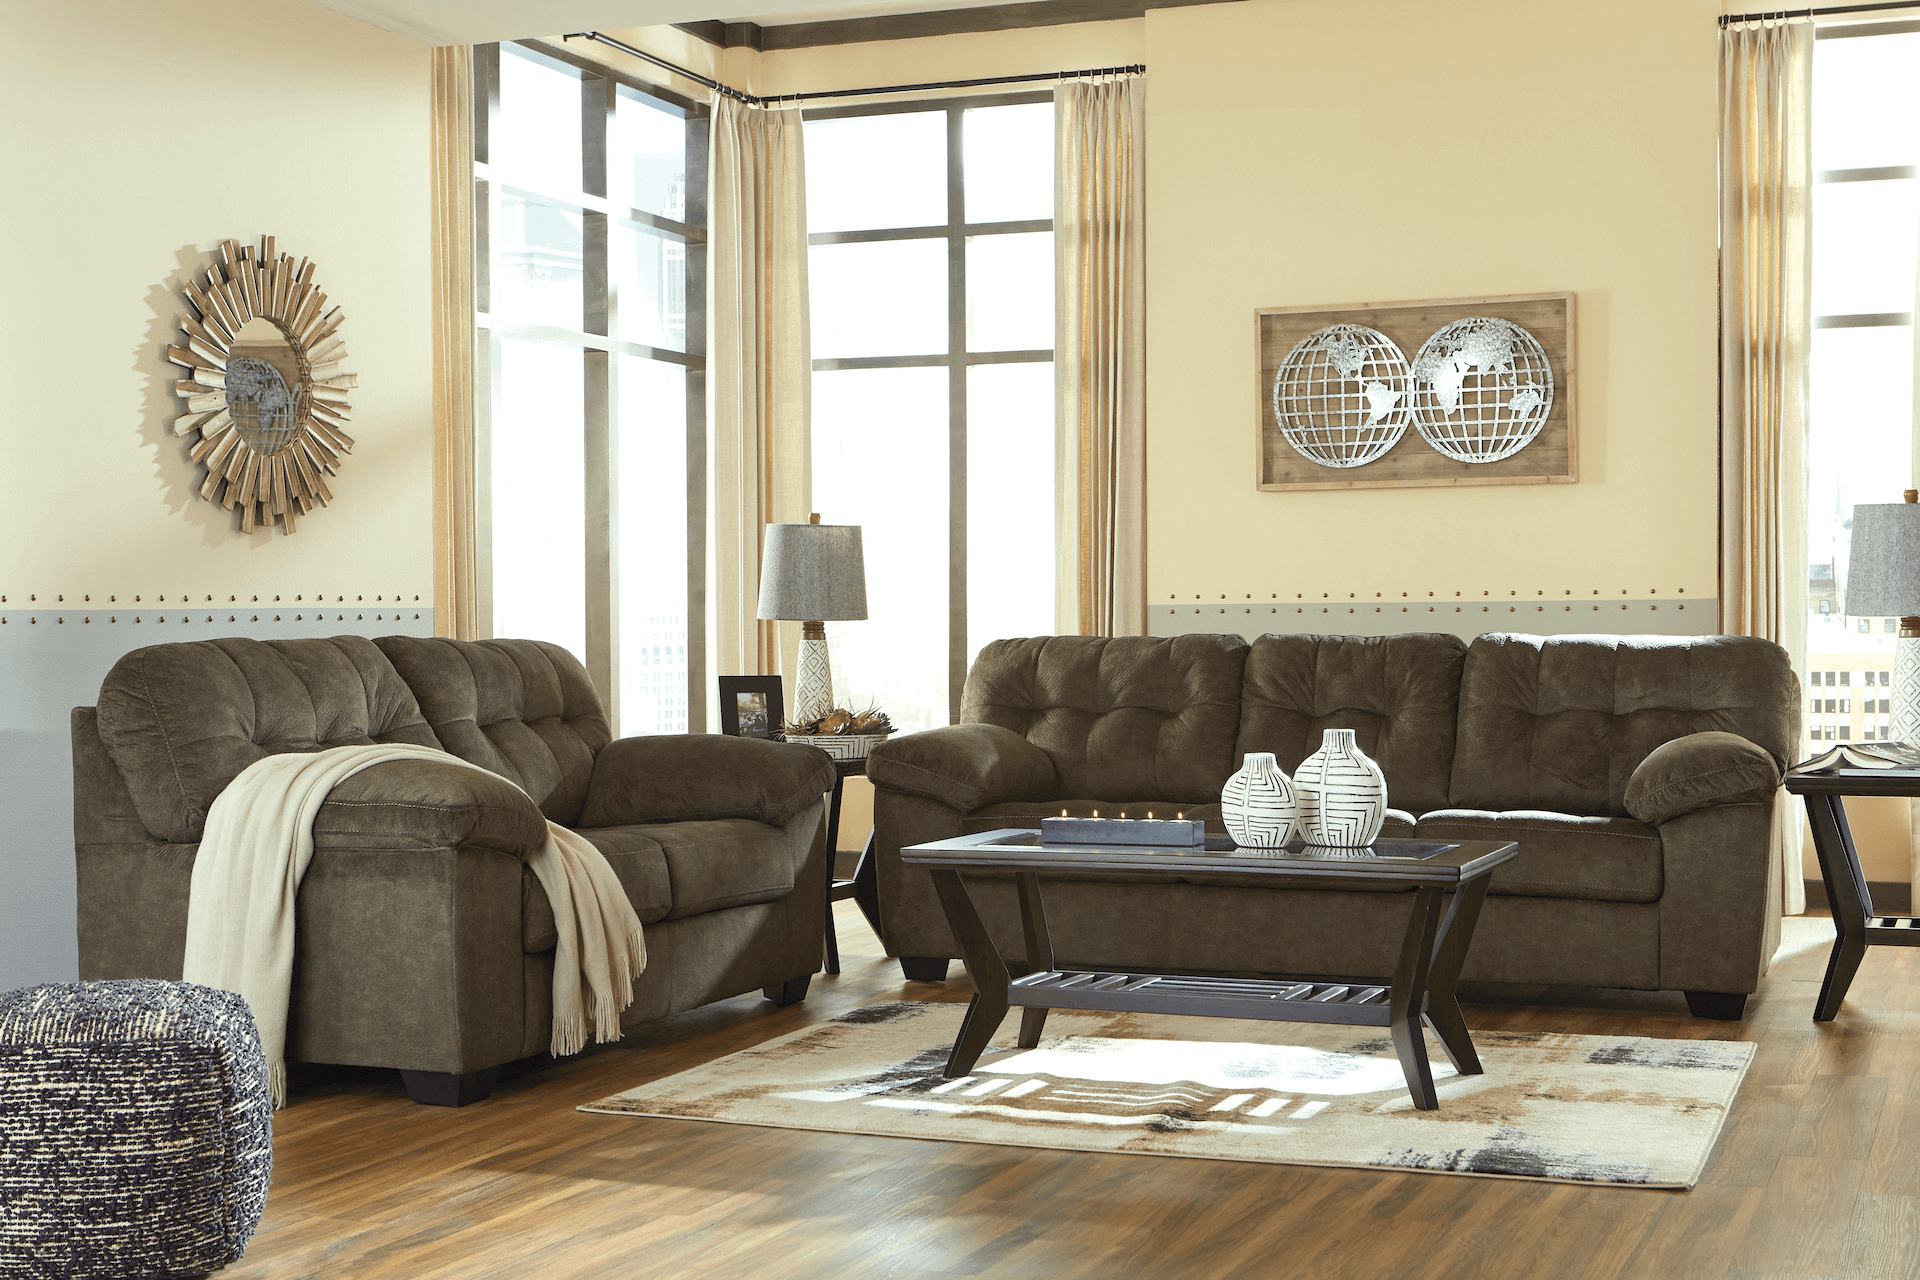 Atlantic_Furniture-Sofa_Sets-70508_T401_hi-res